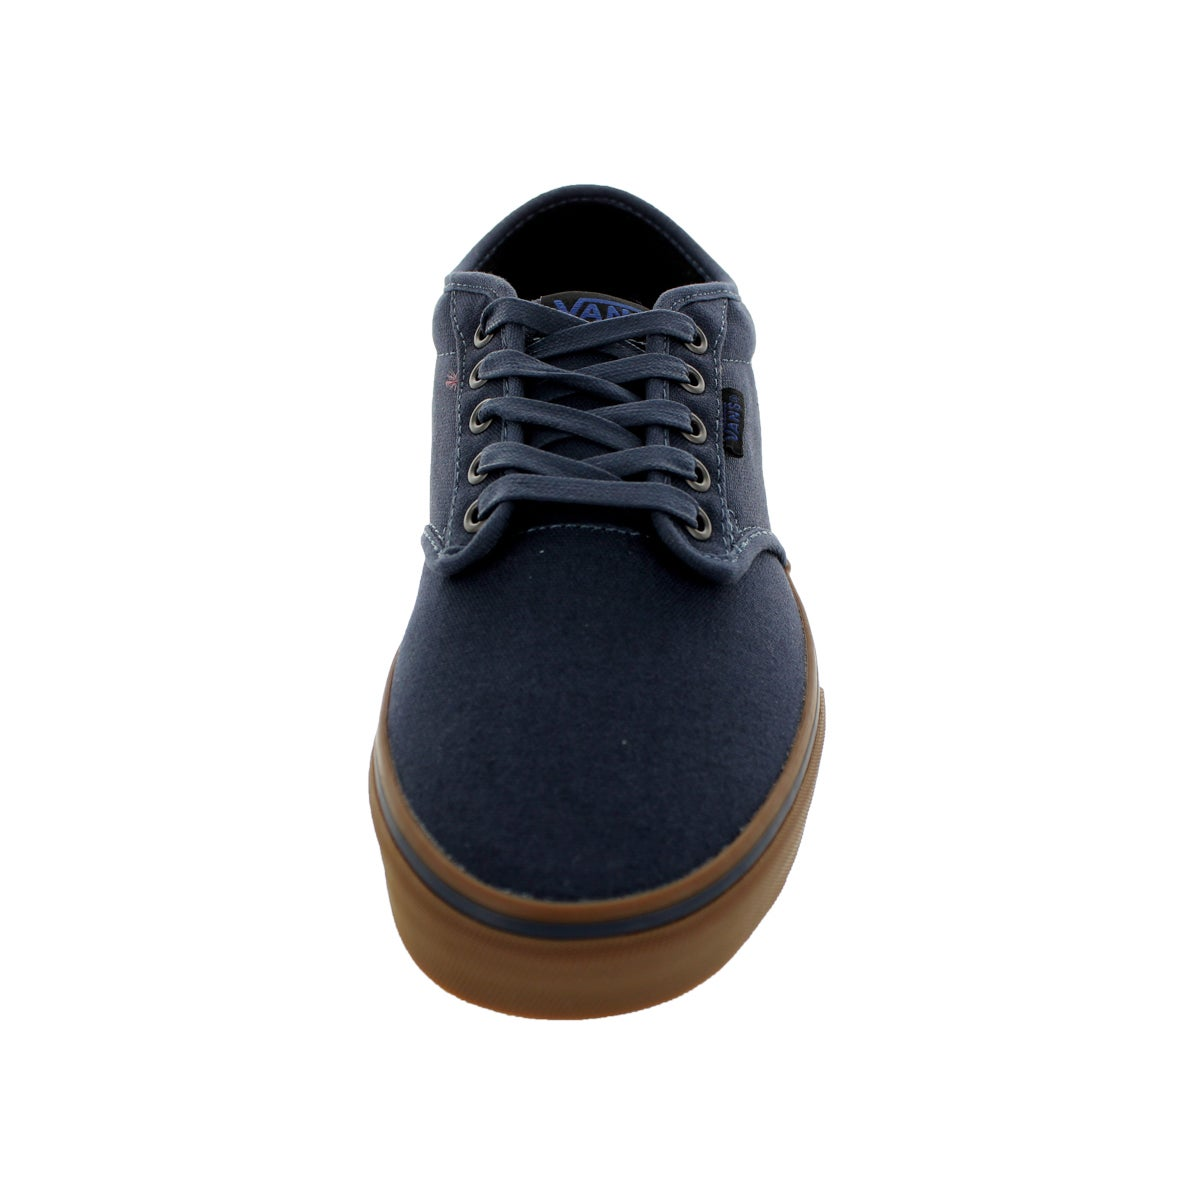 Shop Vans Men s Atwood Navy and Gum 12-ounce Canvas Skate Shoes - Free  Shipping Today - Overstock - 12115150 8b2c44a46